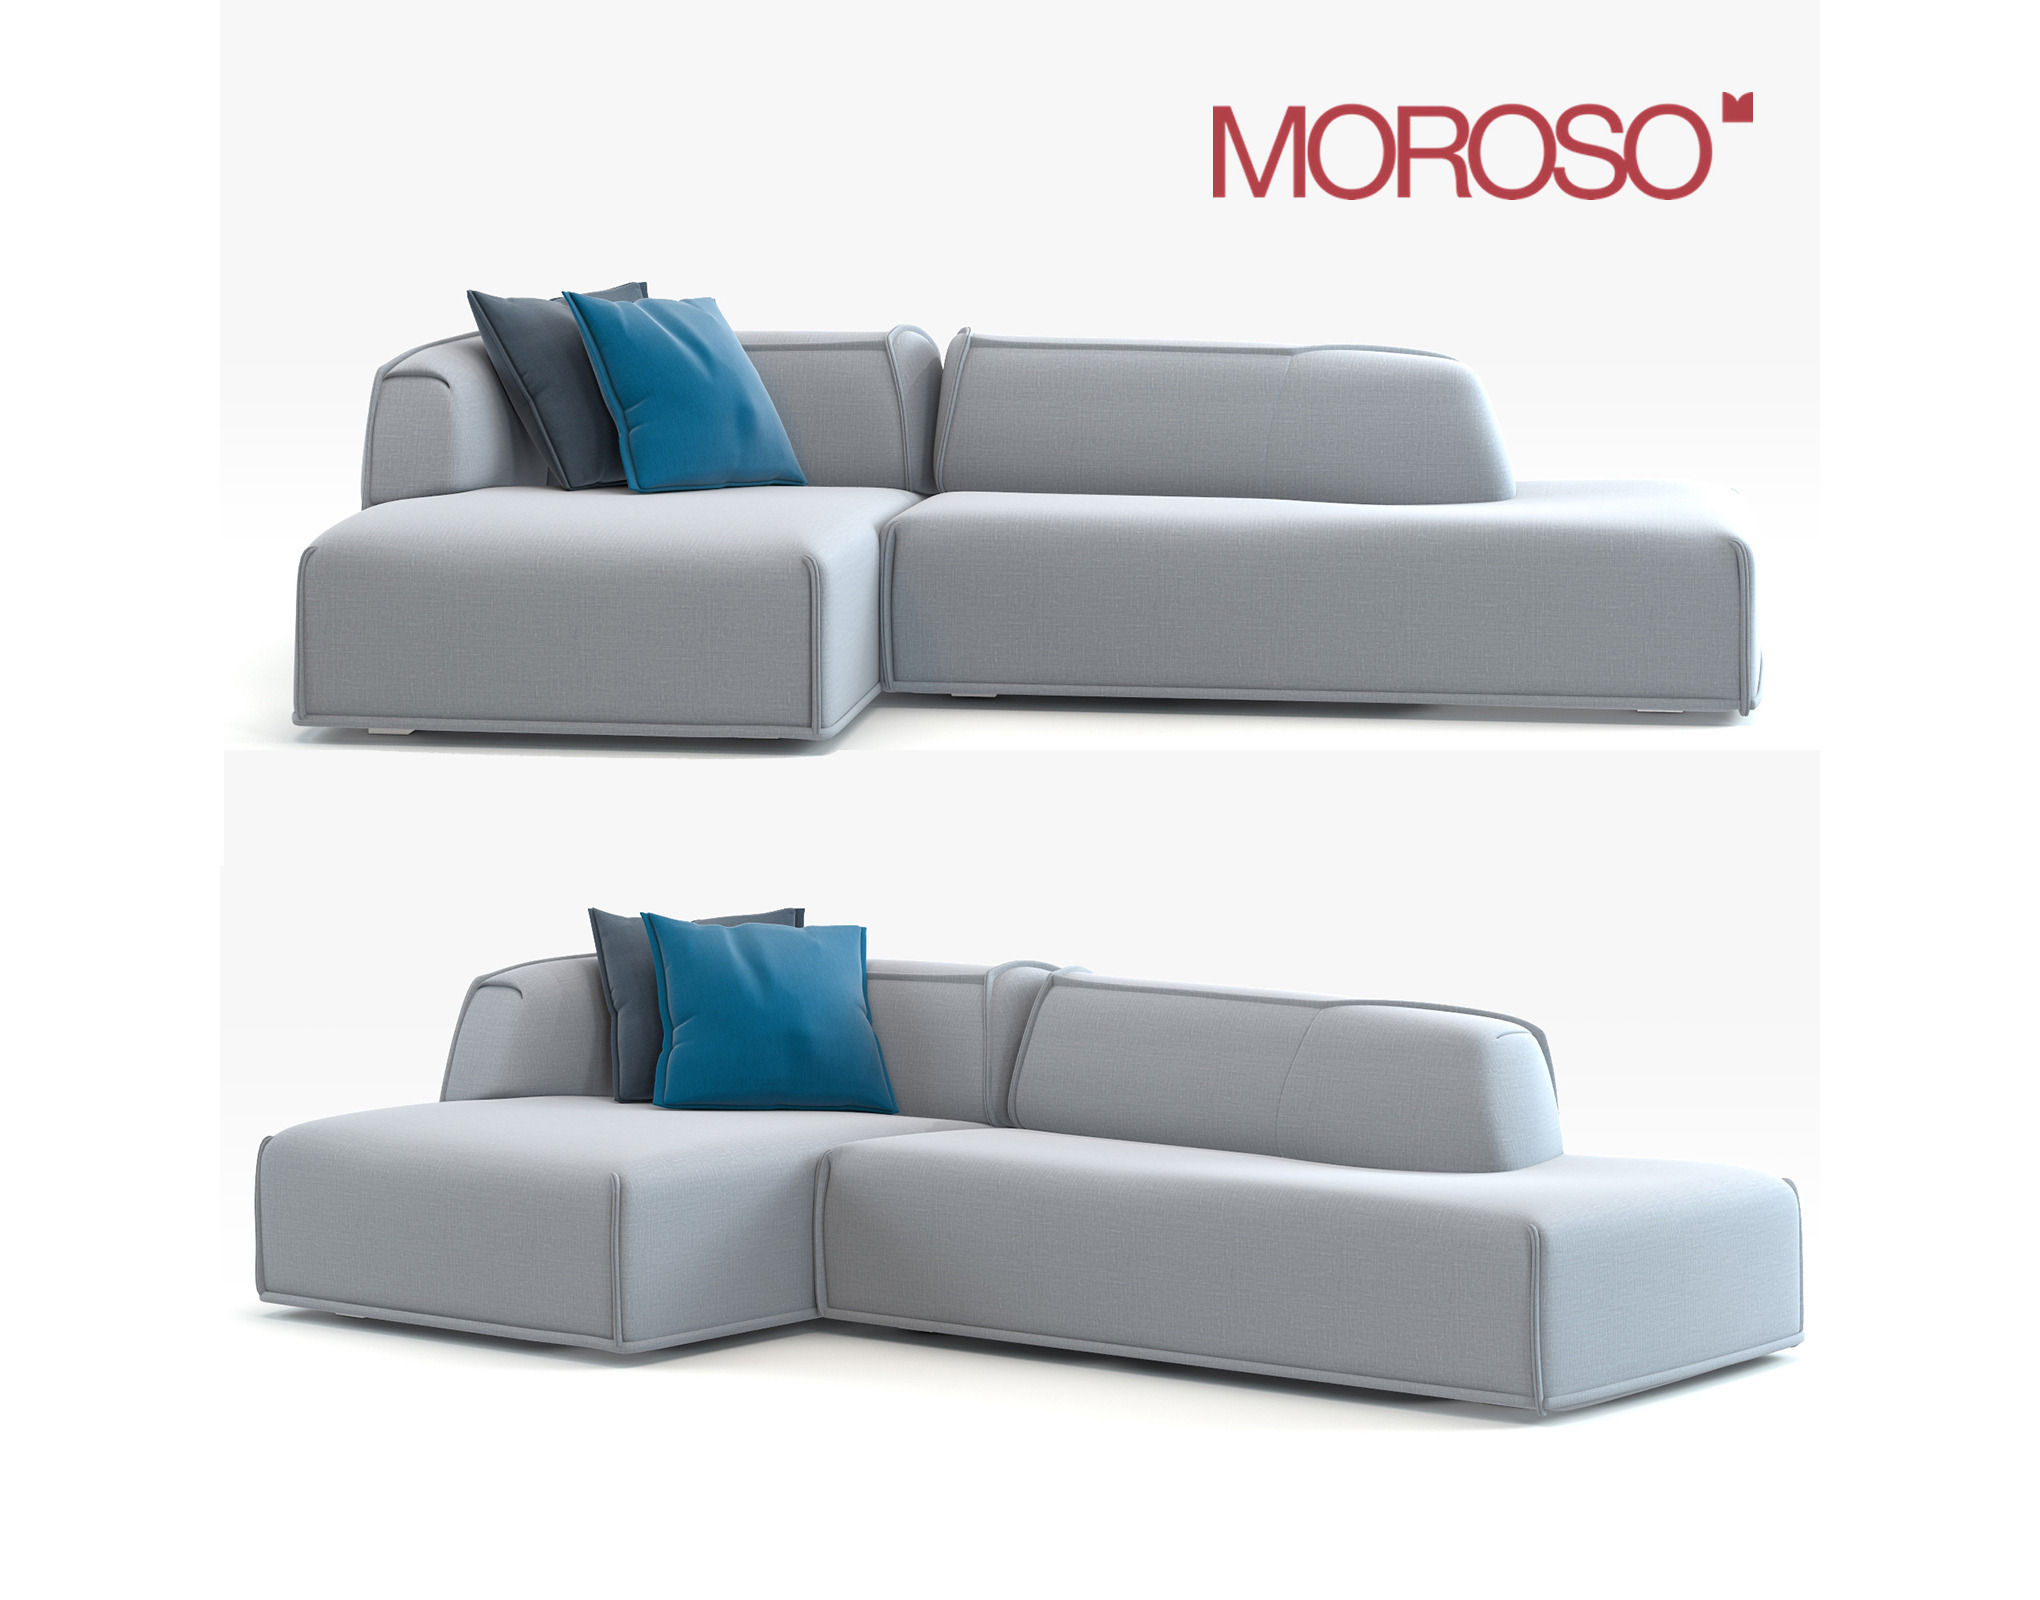 moroso sofas sofas research and select moroso products online architonic thesofa. Black Bedroom Furniture Sets. Home Design Ideas